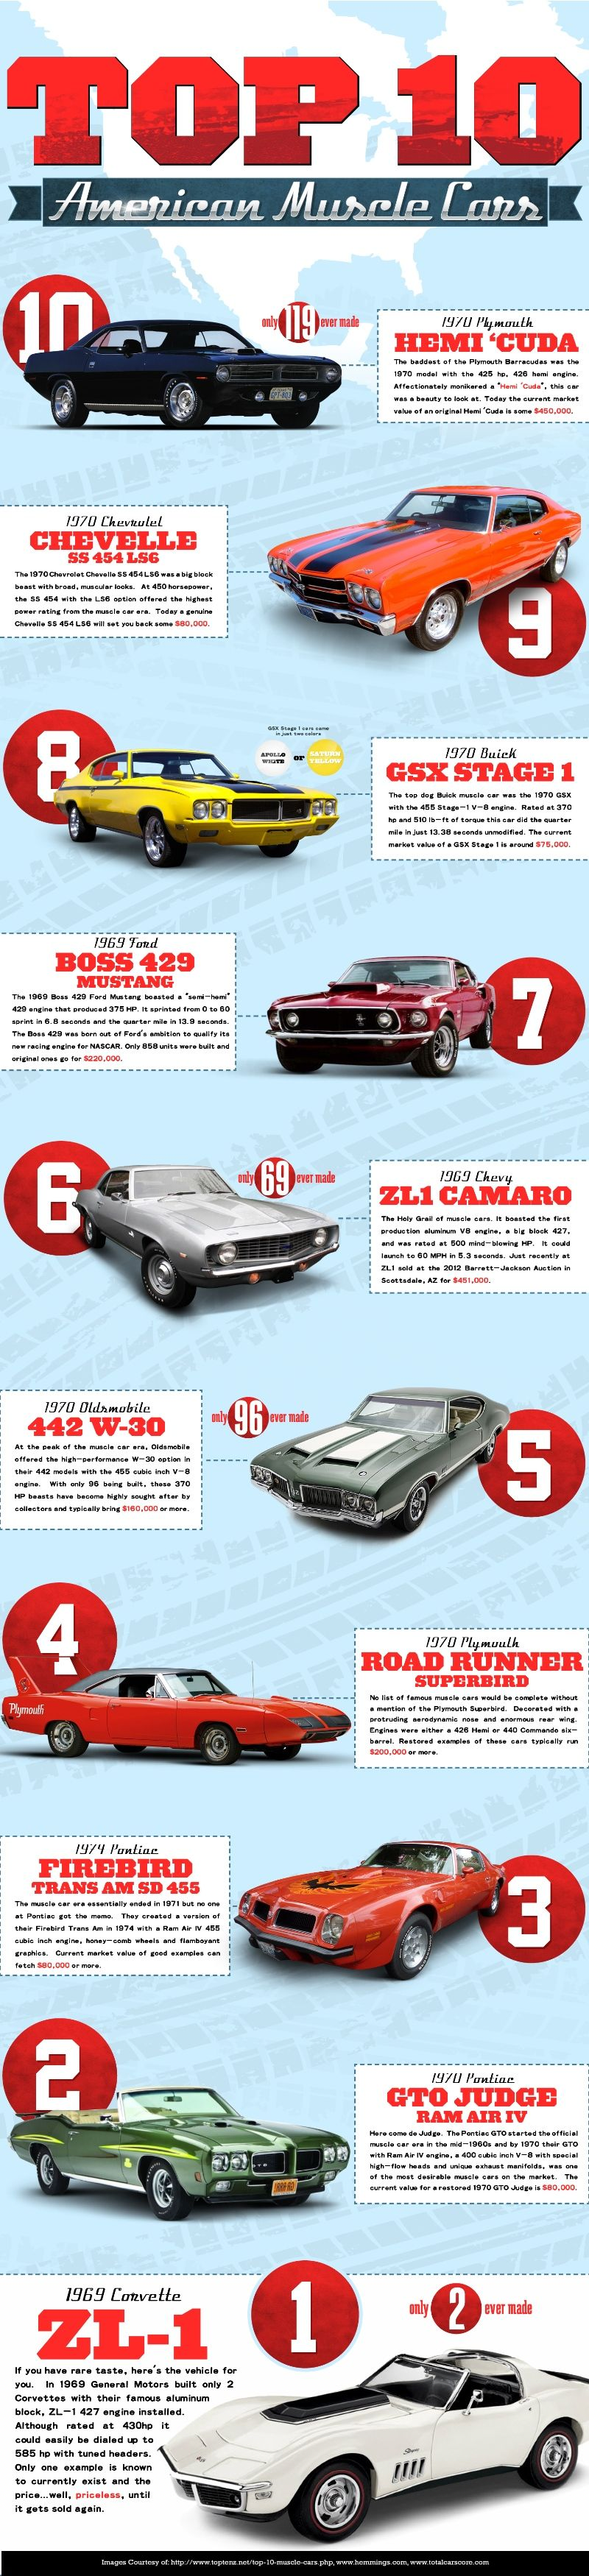 infographic: top-10 american muscle cars - www